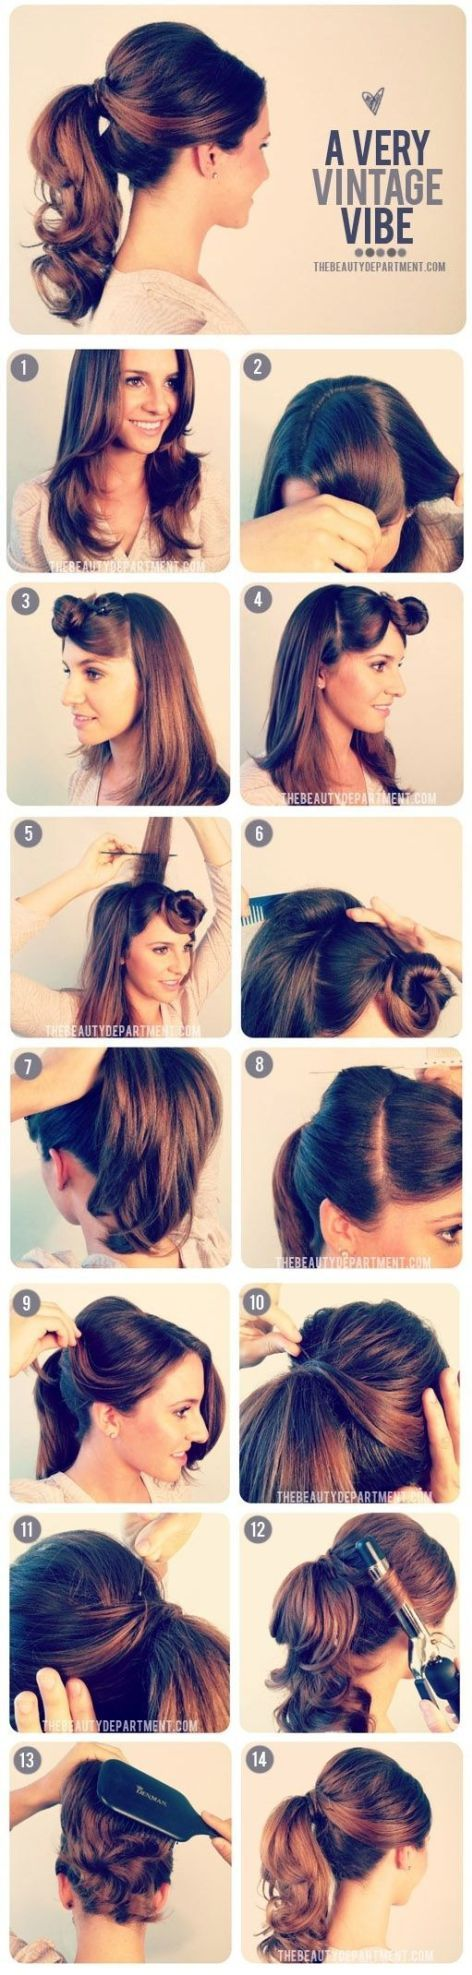 You can style your ponytail with different cute ways.  There are lots of ideas to create new look with old pony tail style. These are not difficult just need a bit creativity and artistic mind. The…